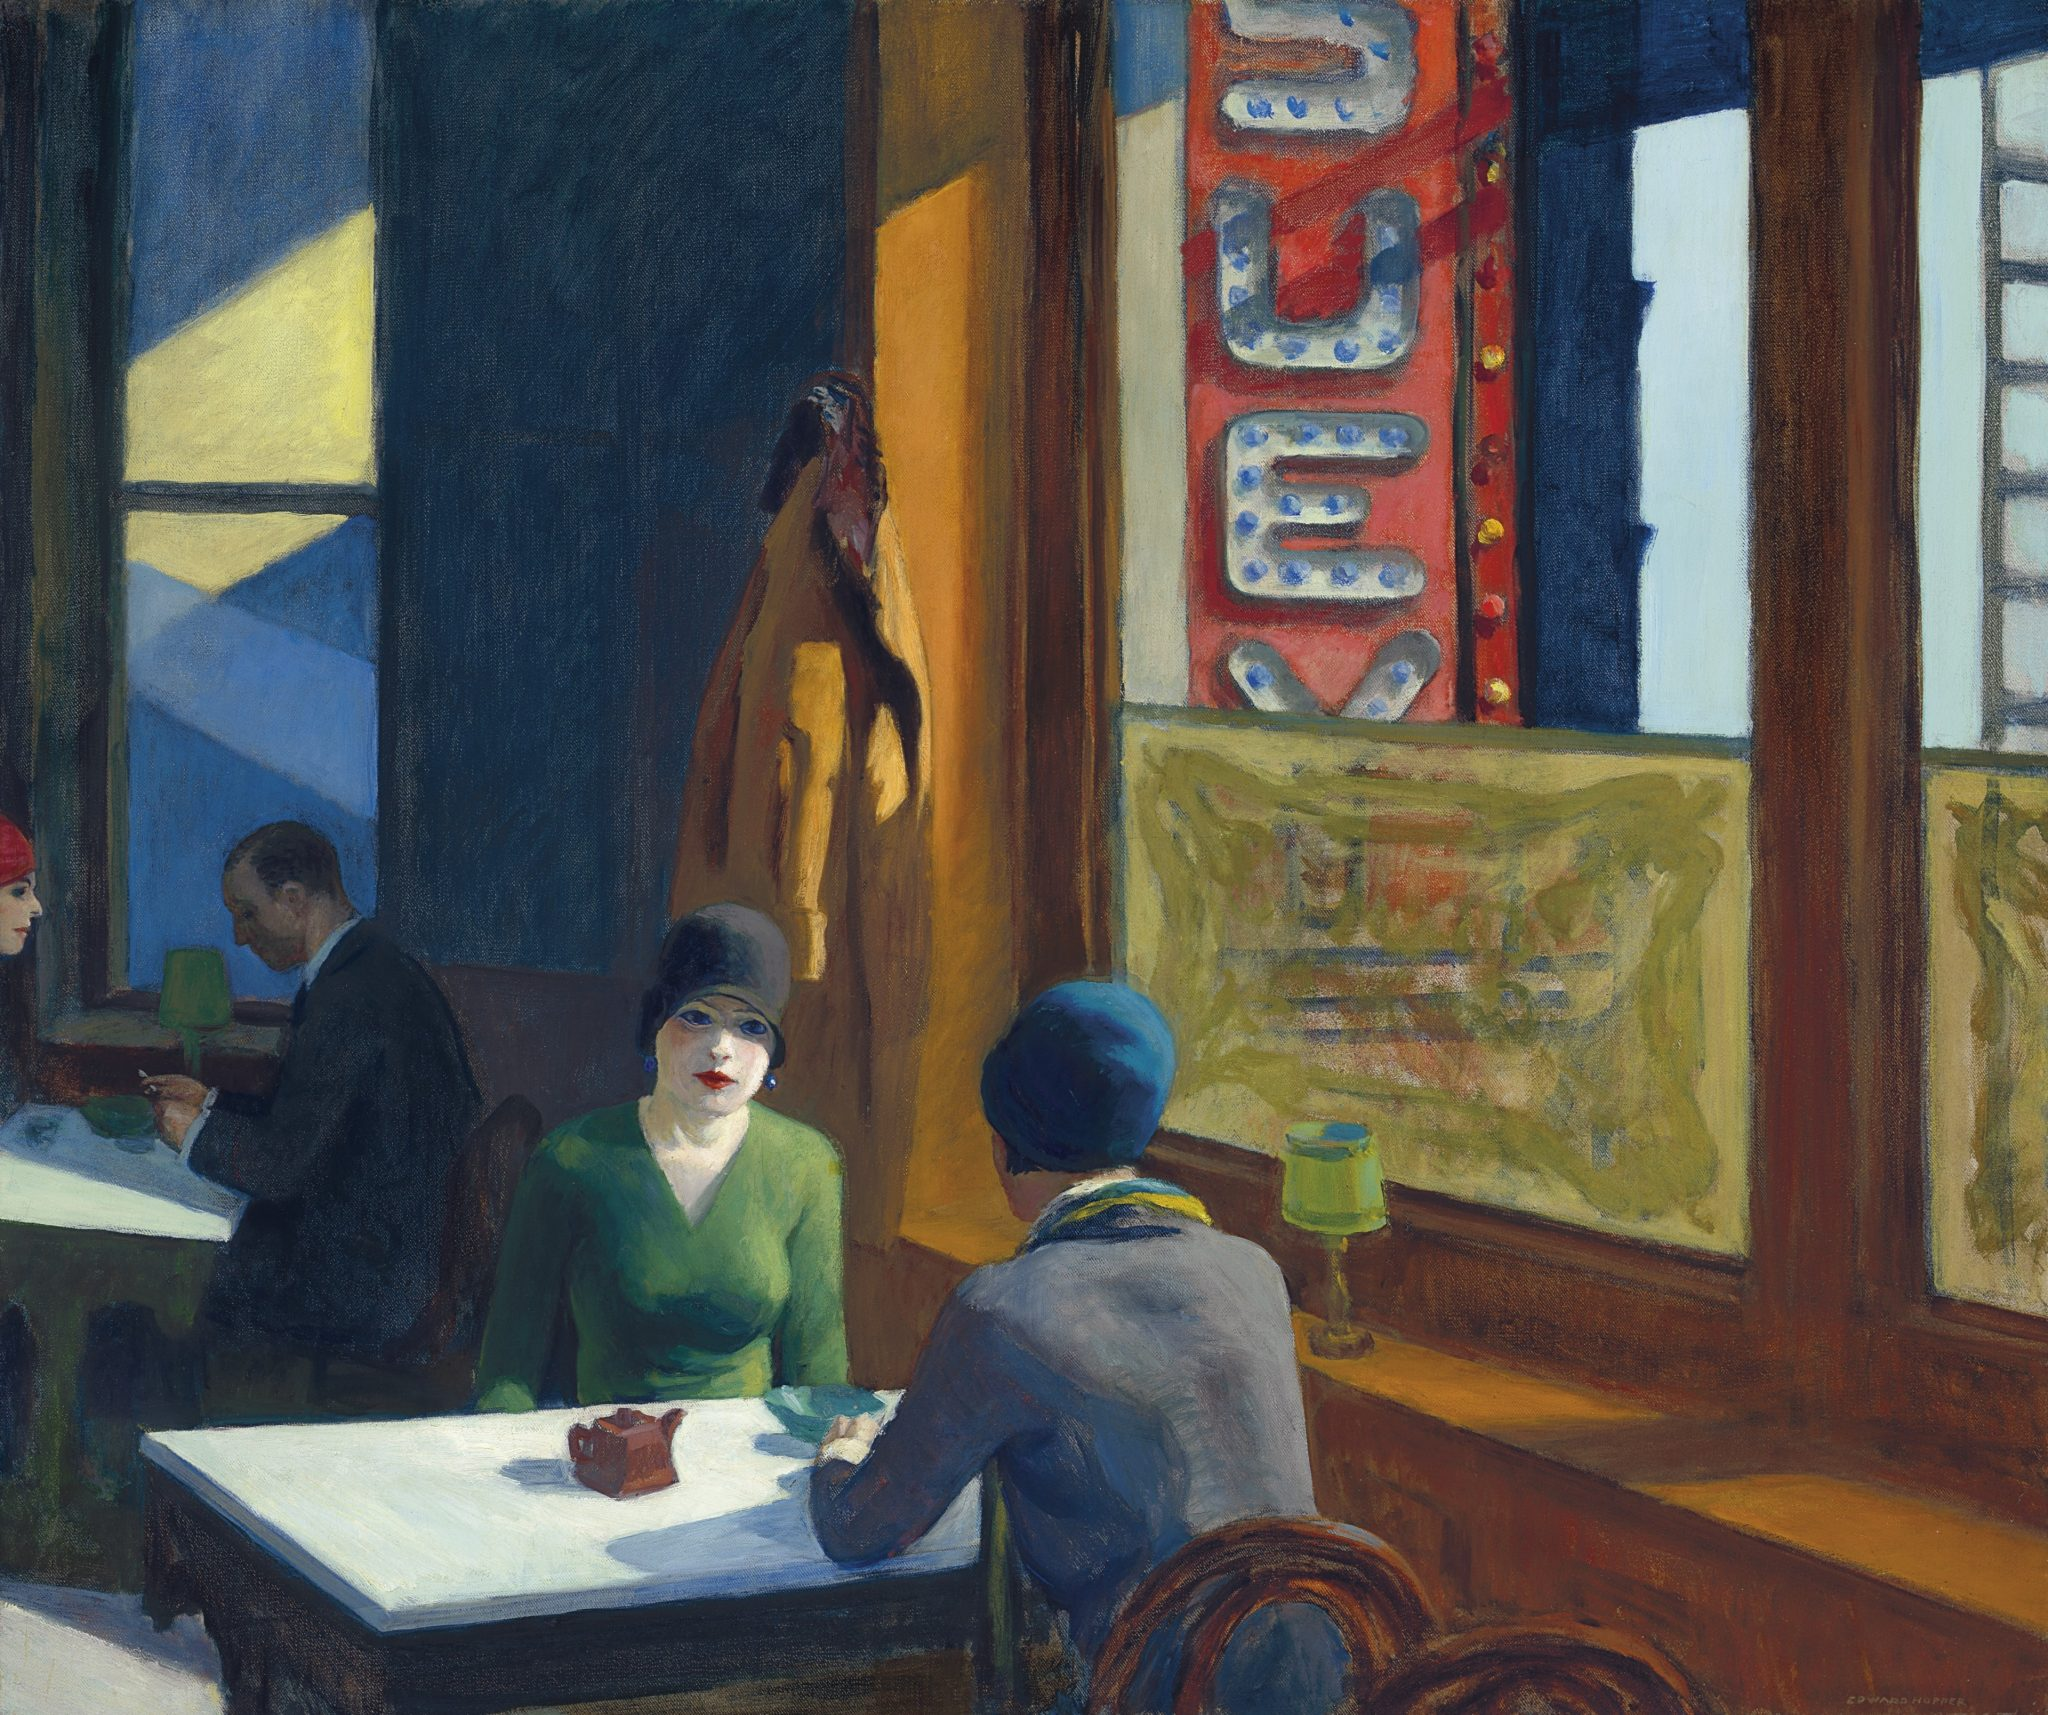 EDWARD HOPPER (1882-1967) Chop Suey oil on canvas 32 x 38 in. Painted in 1929 Estimate in the region of $70 million